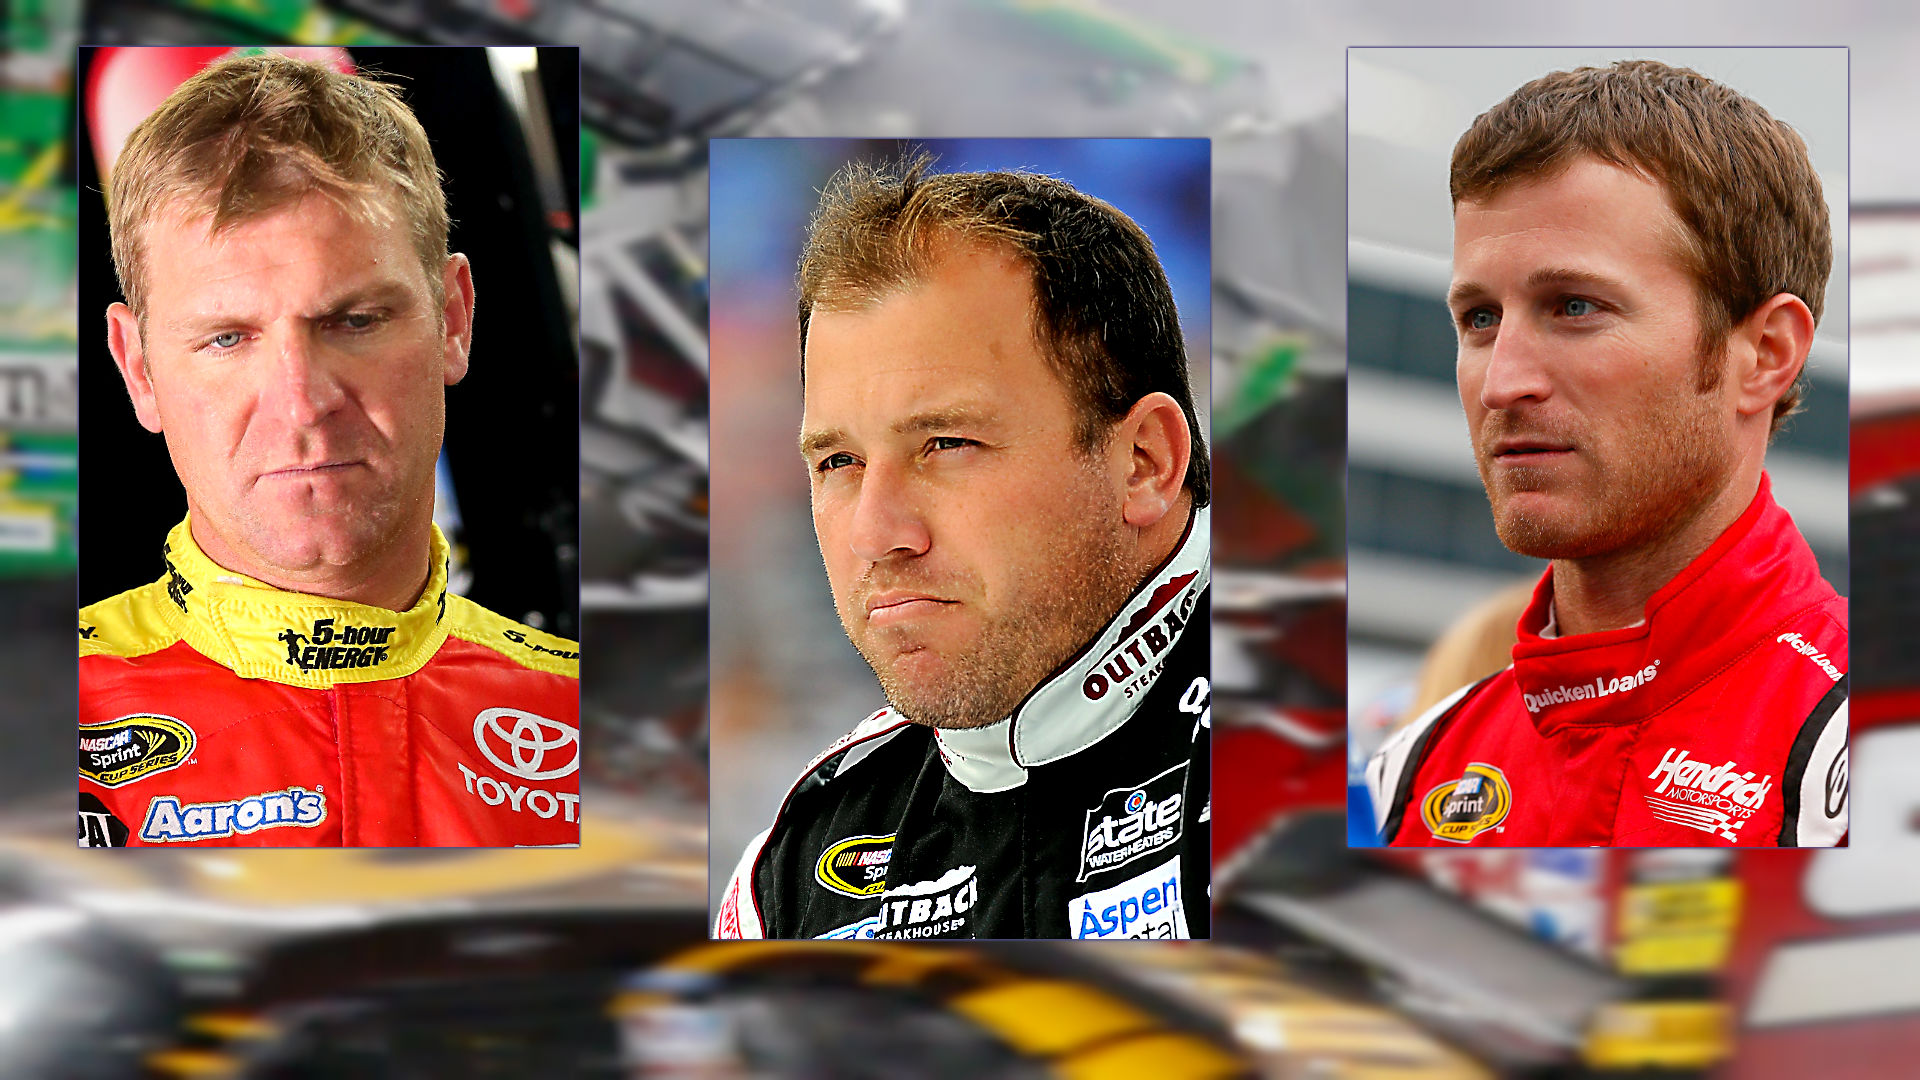 NASCAR's worst free agent driver moves